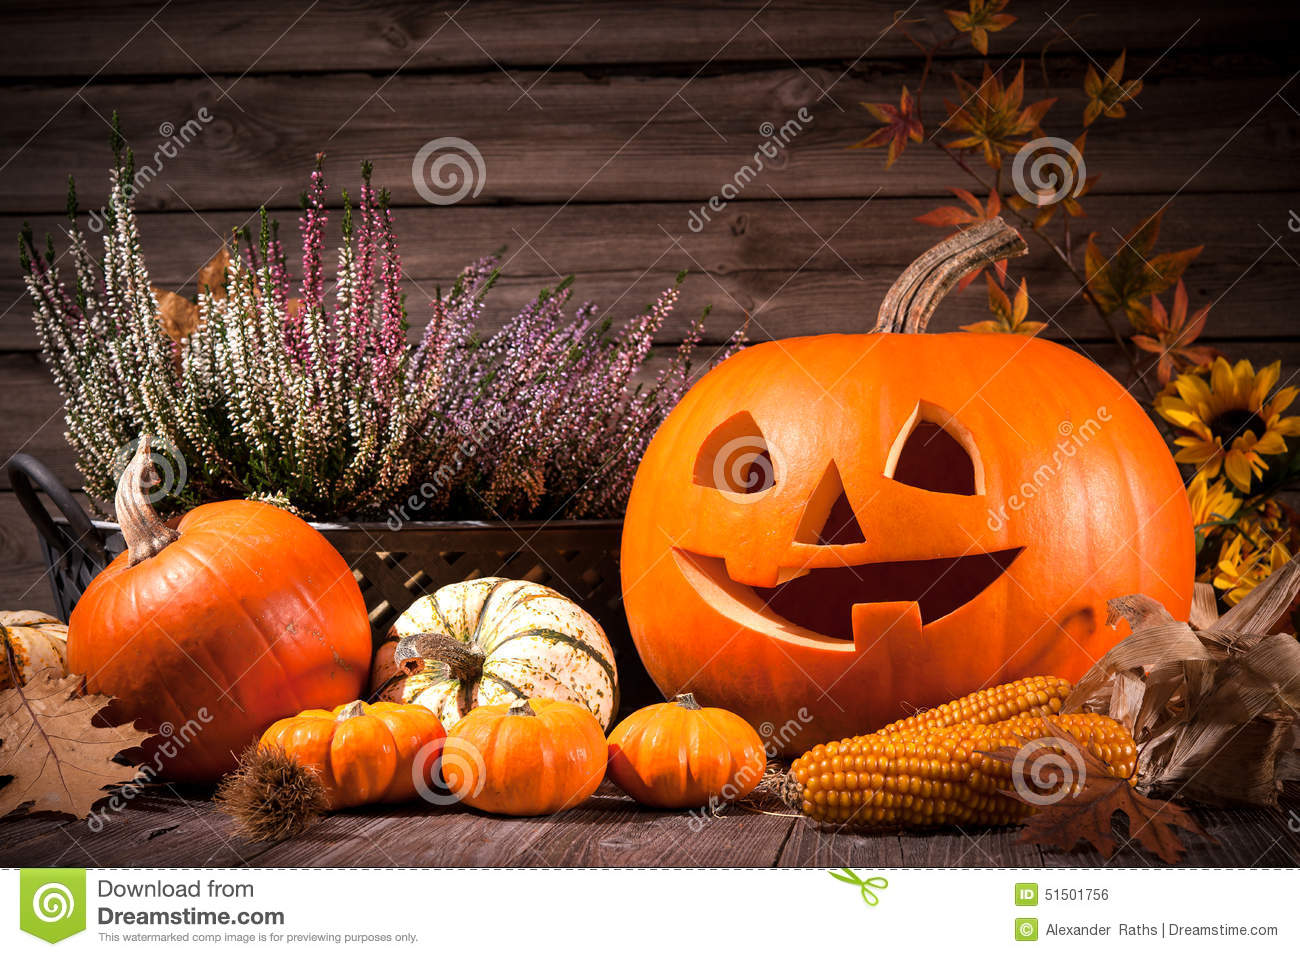 Autumn still life with Halloween pumpkins